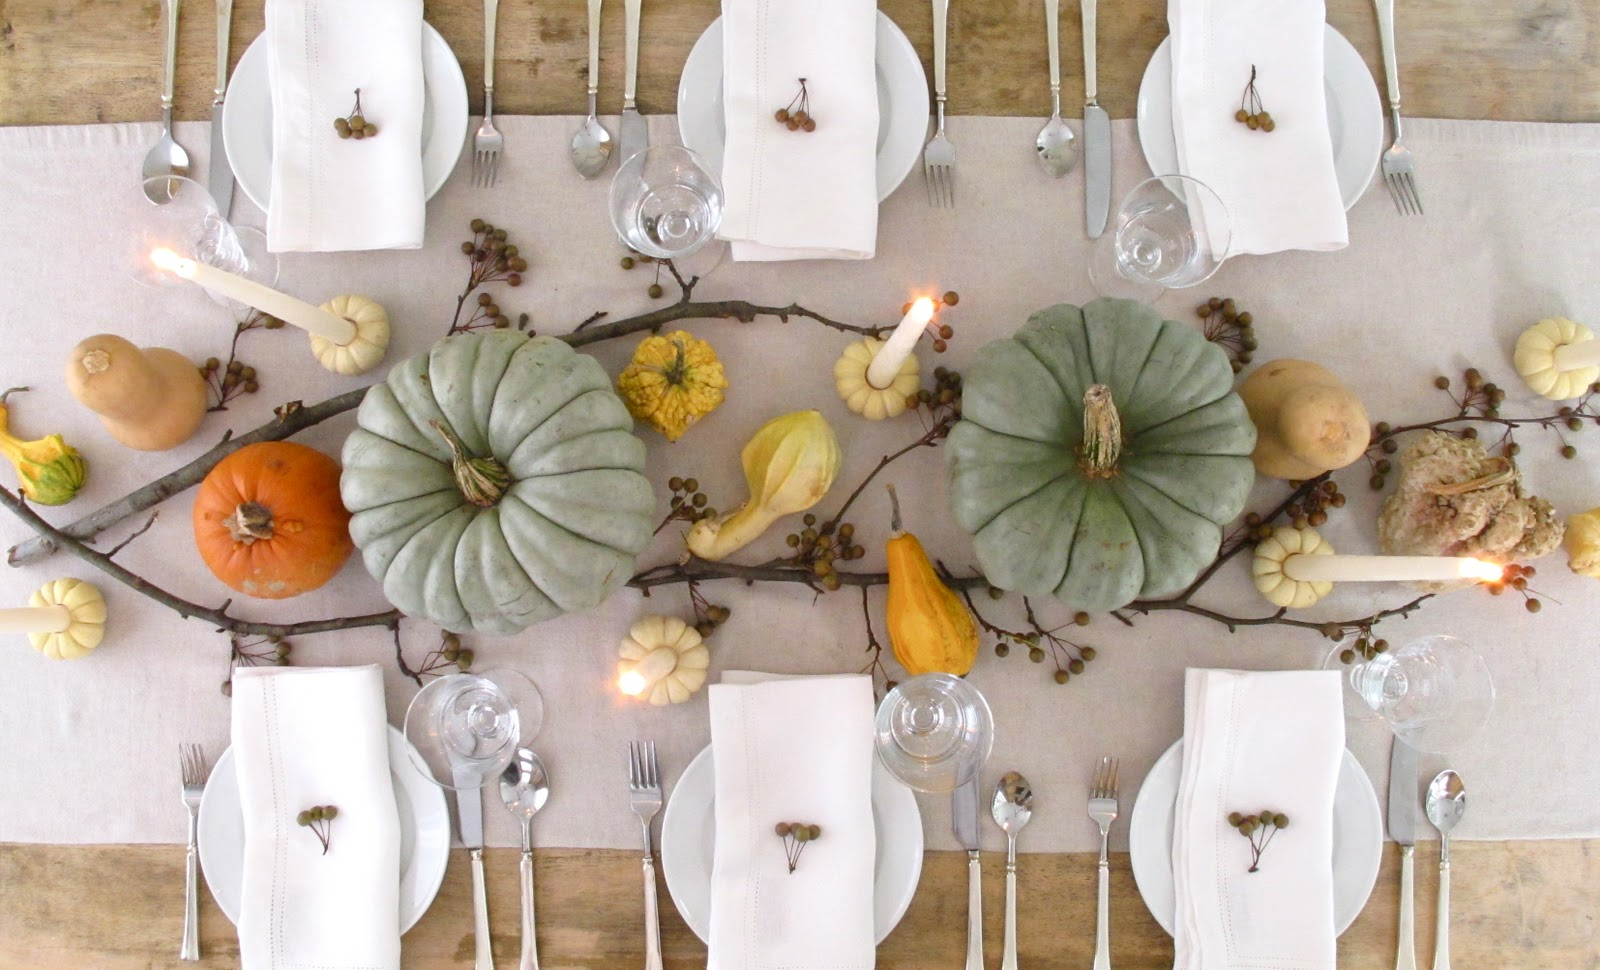 Jenny steffens hobick mini pumpkin candle holder diy for Fall table